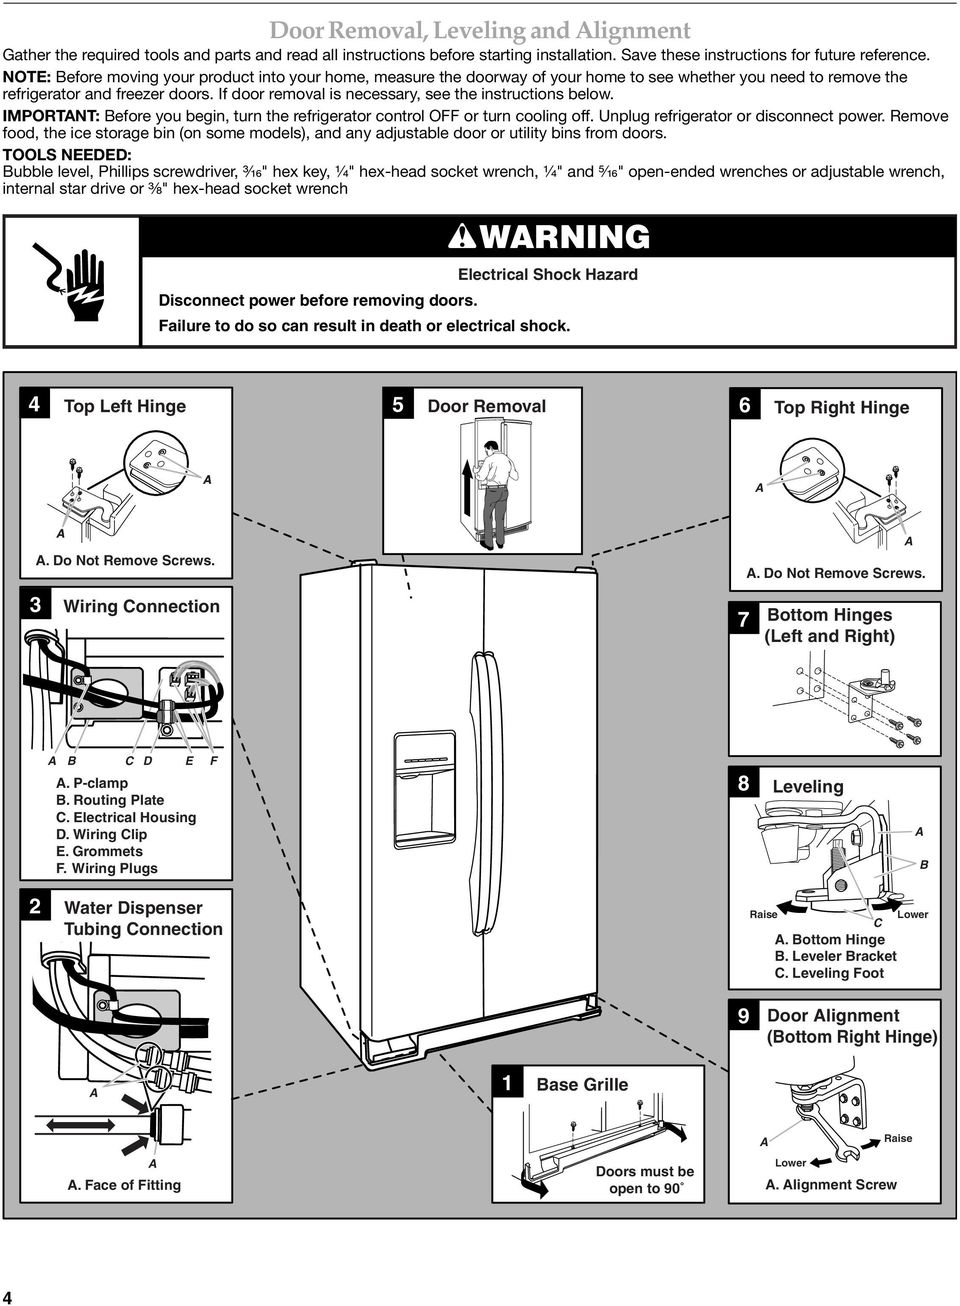 If door removal is necessary, see the instructions below. IMPORTNT: Before you begin, turn the refrigerator control OFF or turn cooling off. Unplug refrigerator or disconnect power.